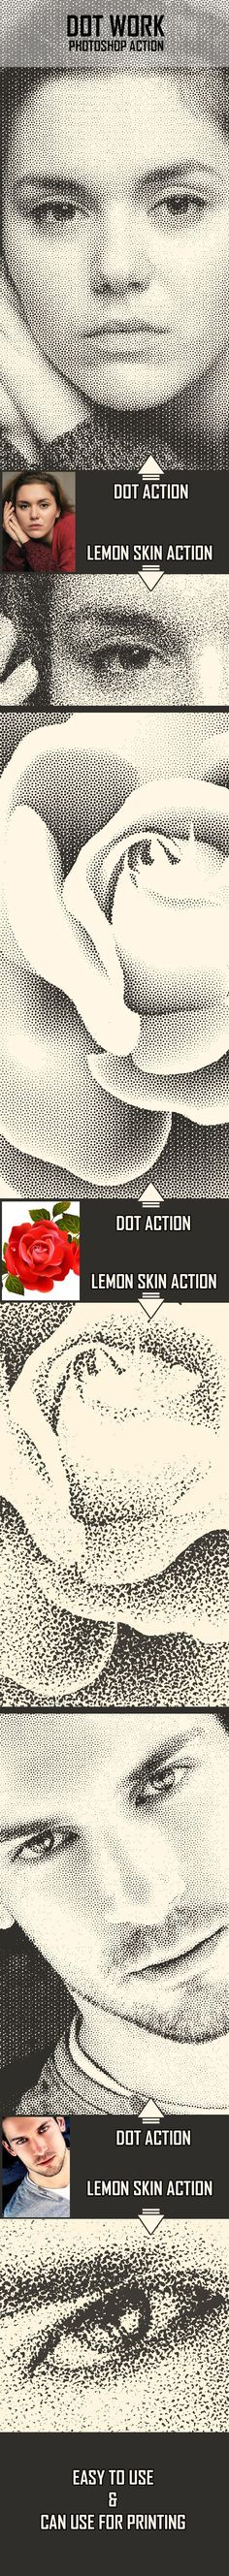 Dot Work Photoshop Action - Photo Effects Actions